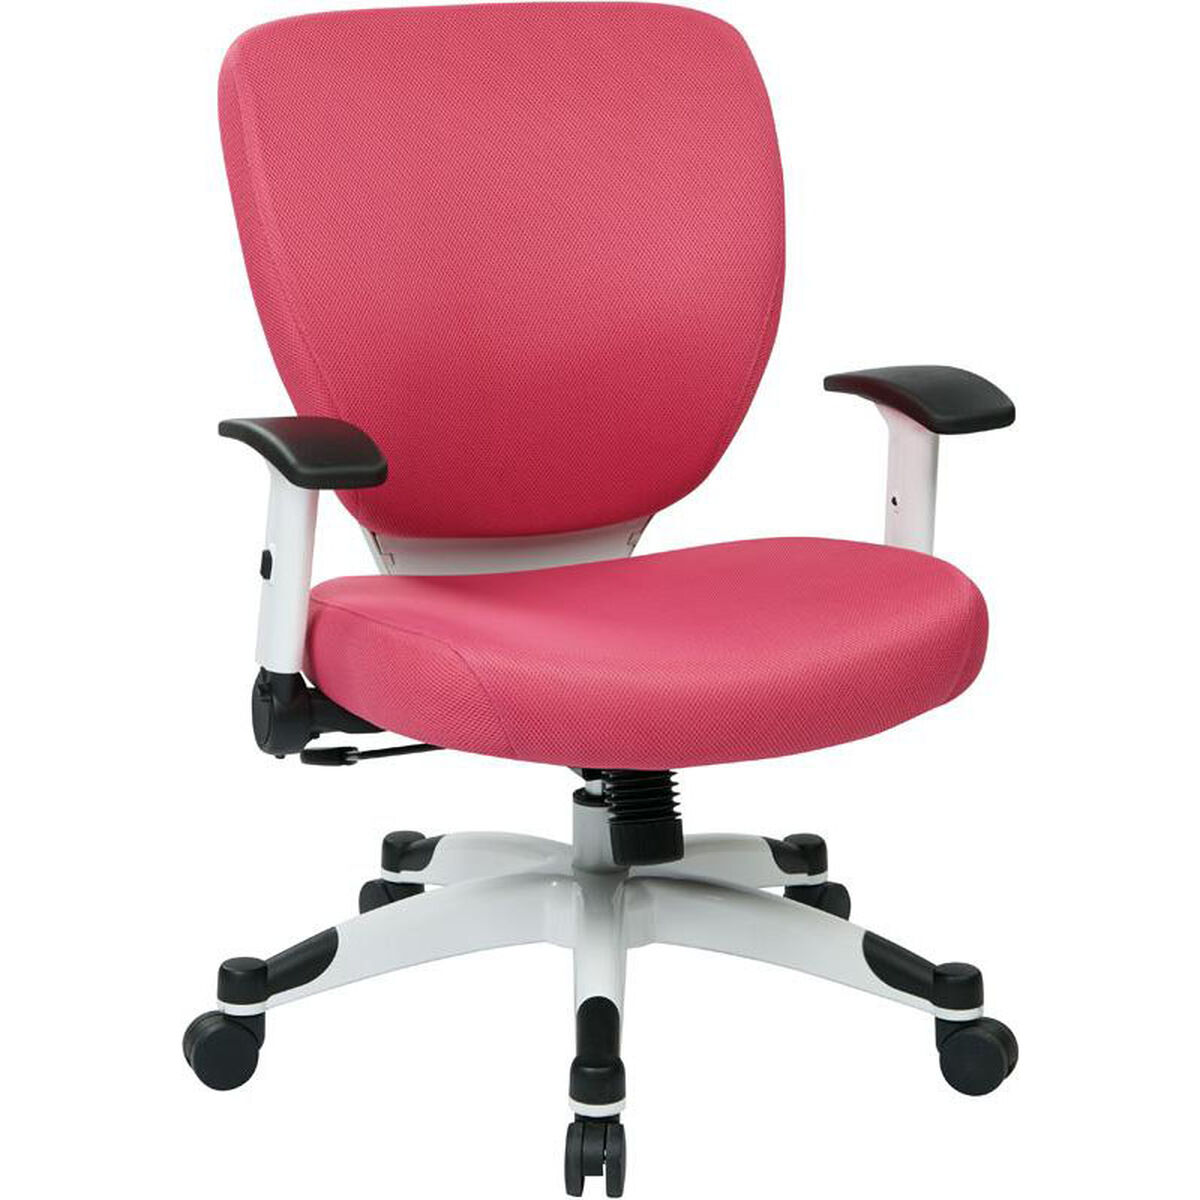 Our Space Pulsar Padded Mesh Seat And Back Managers Office Chair Pink Is On